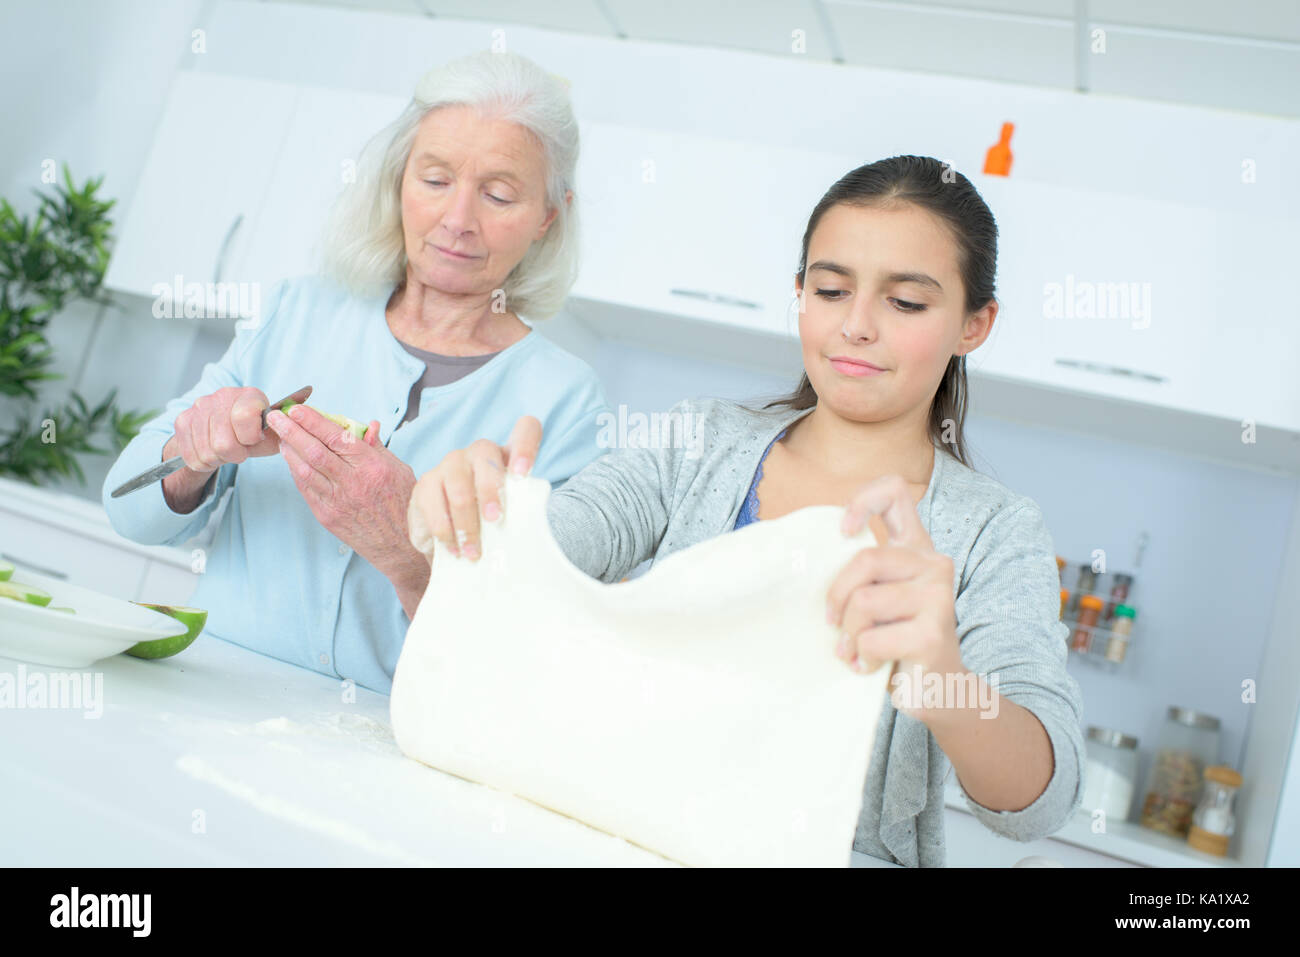 senior nanny cooking with girl - Stock Image